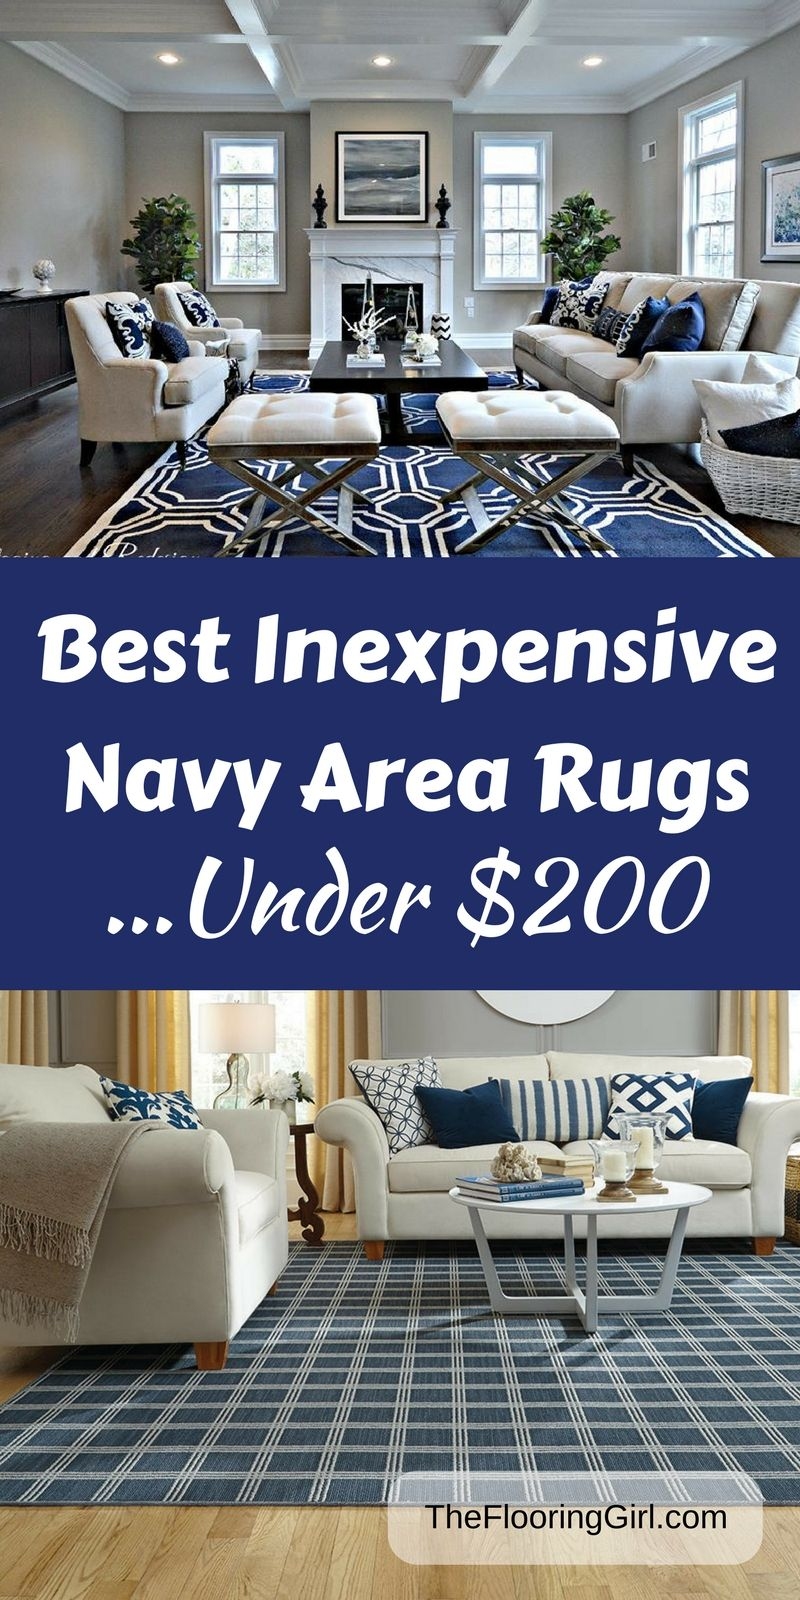 where to buy inexpensive navy area rugs best of the flooring girl